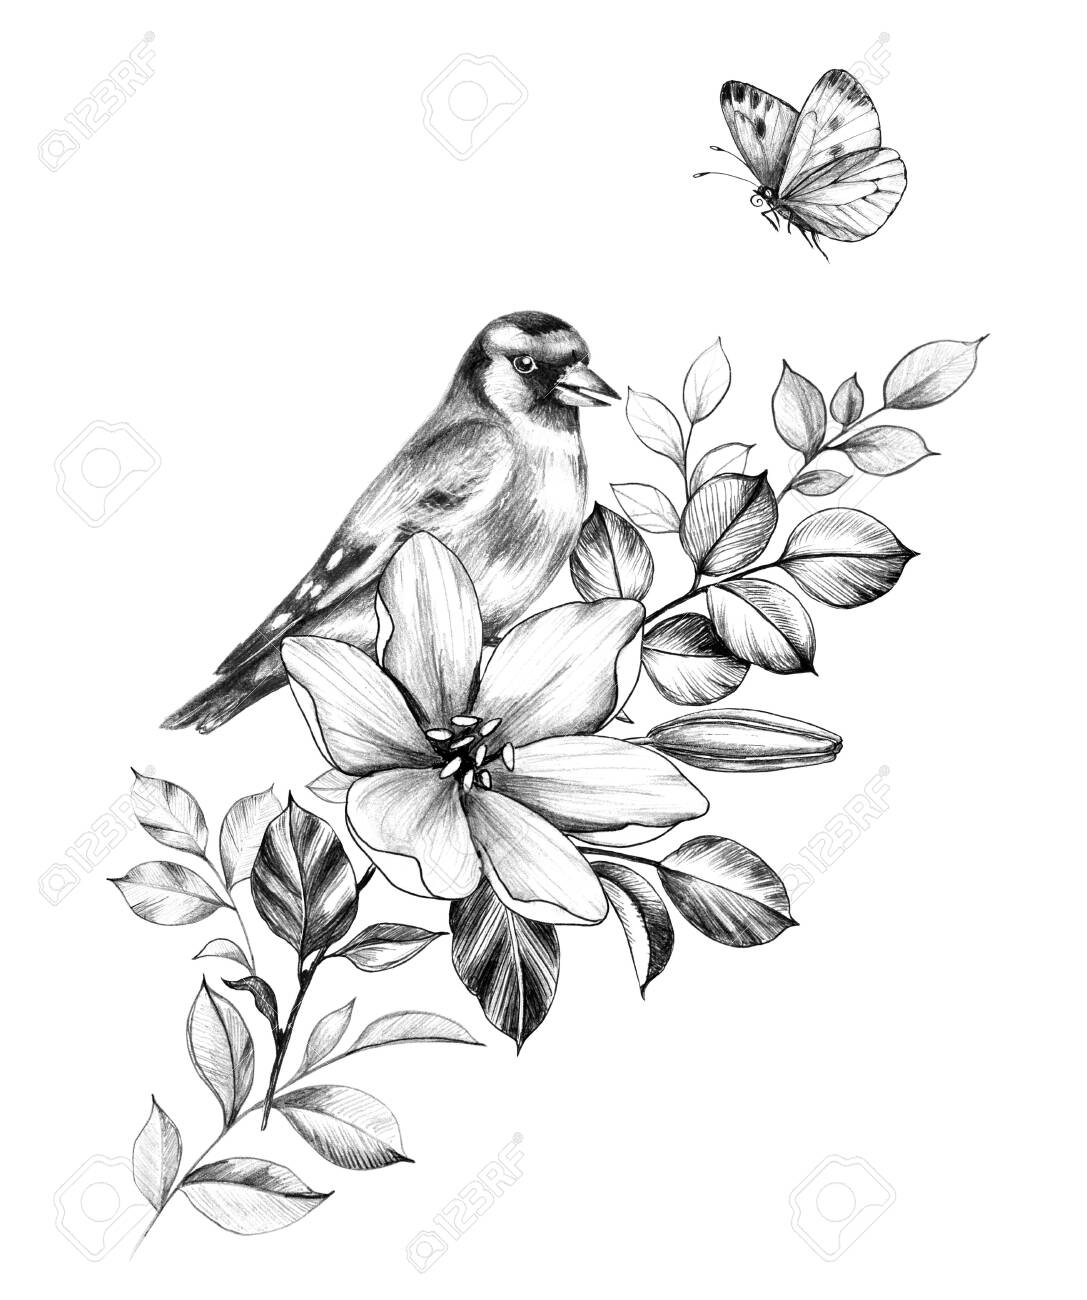 Hand drawn goldfinch sitting on branch with flower isolated on